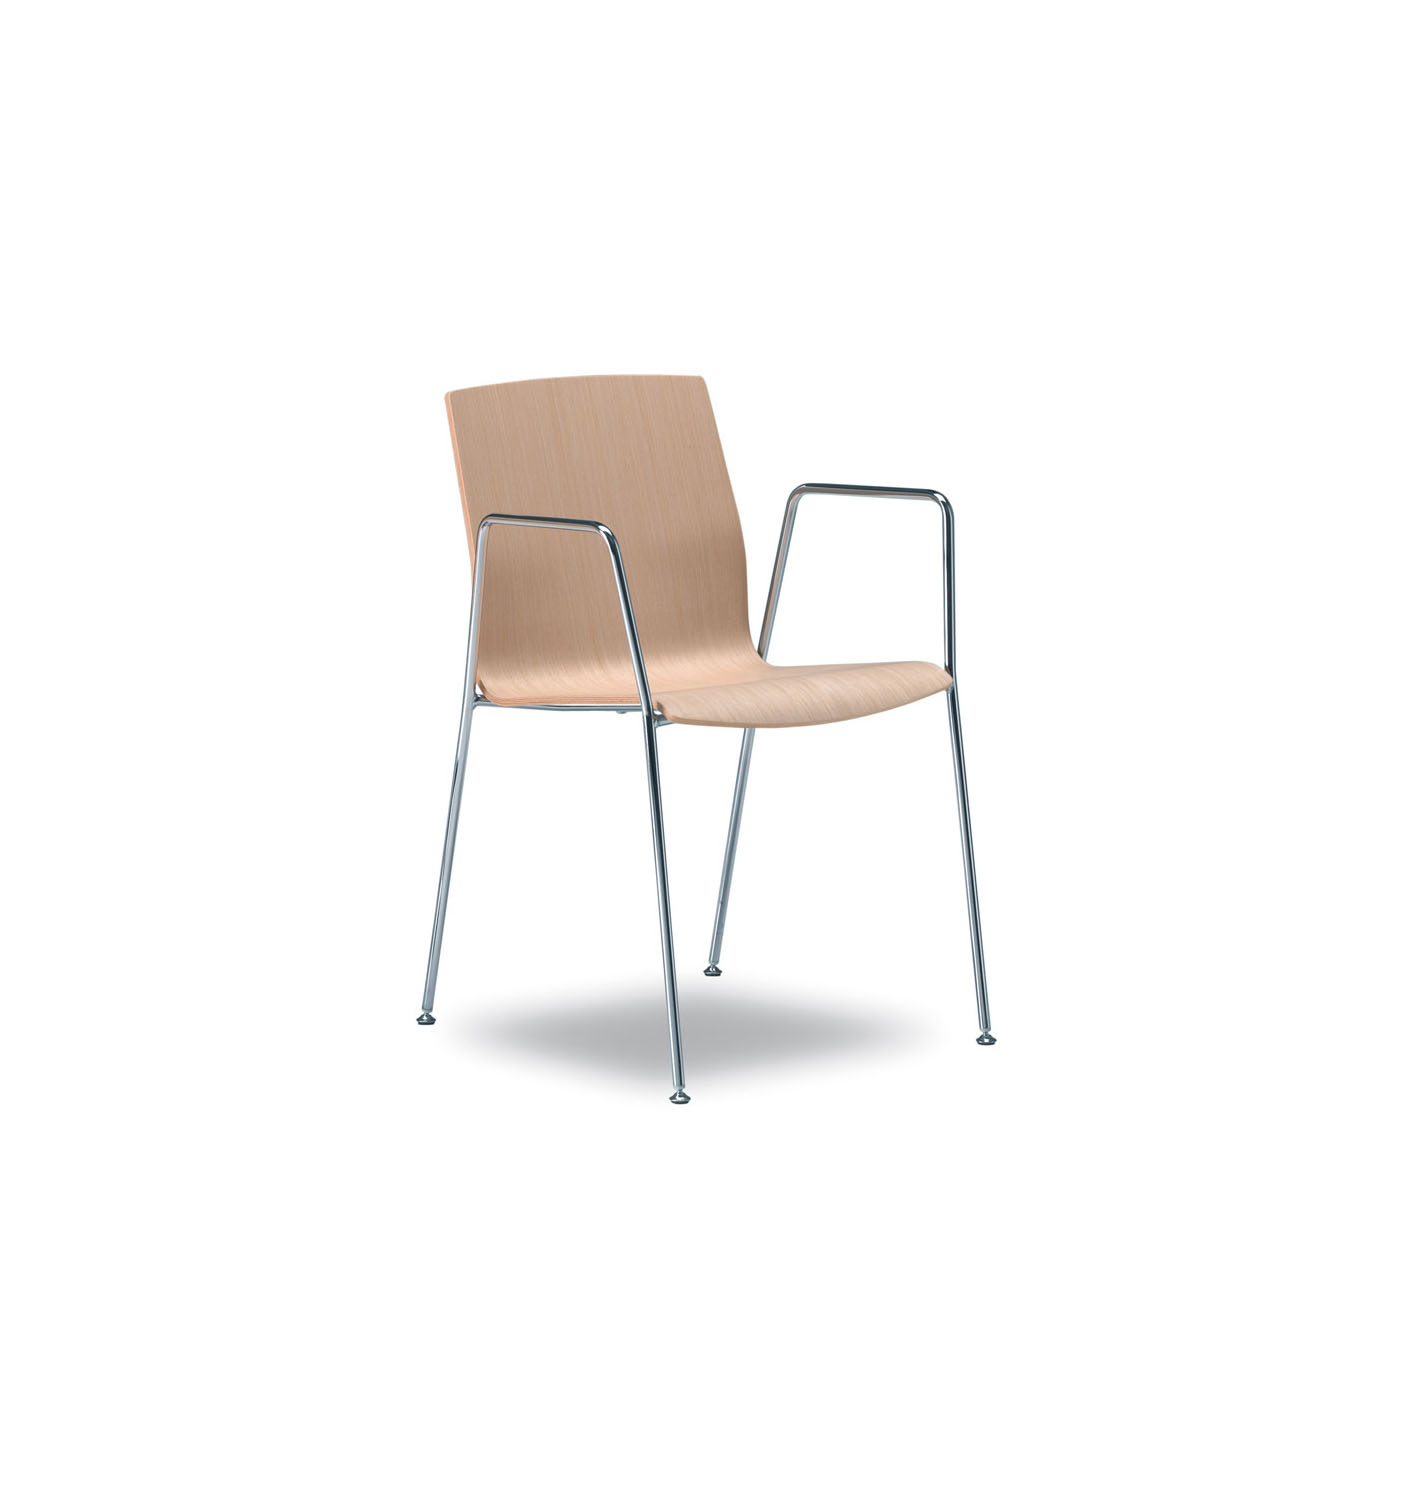 Kimbox kastel seating for offices communities and for Kastel sedie